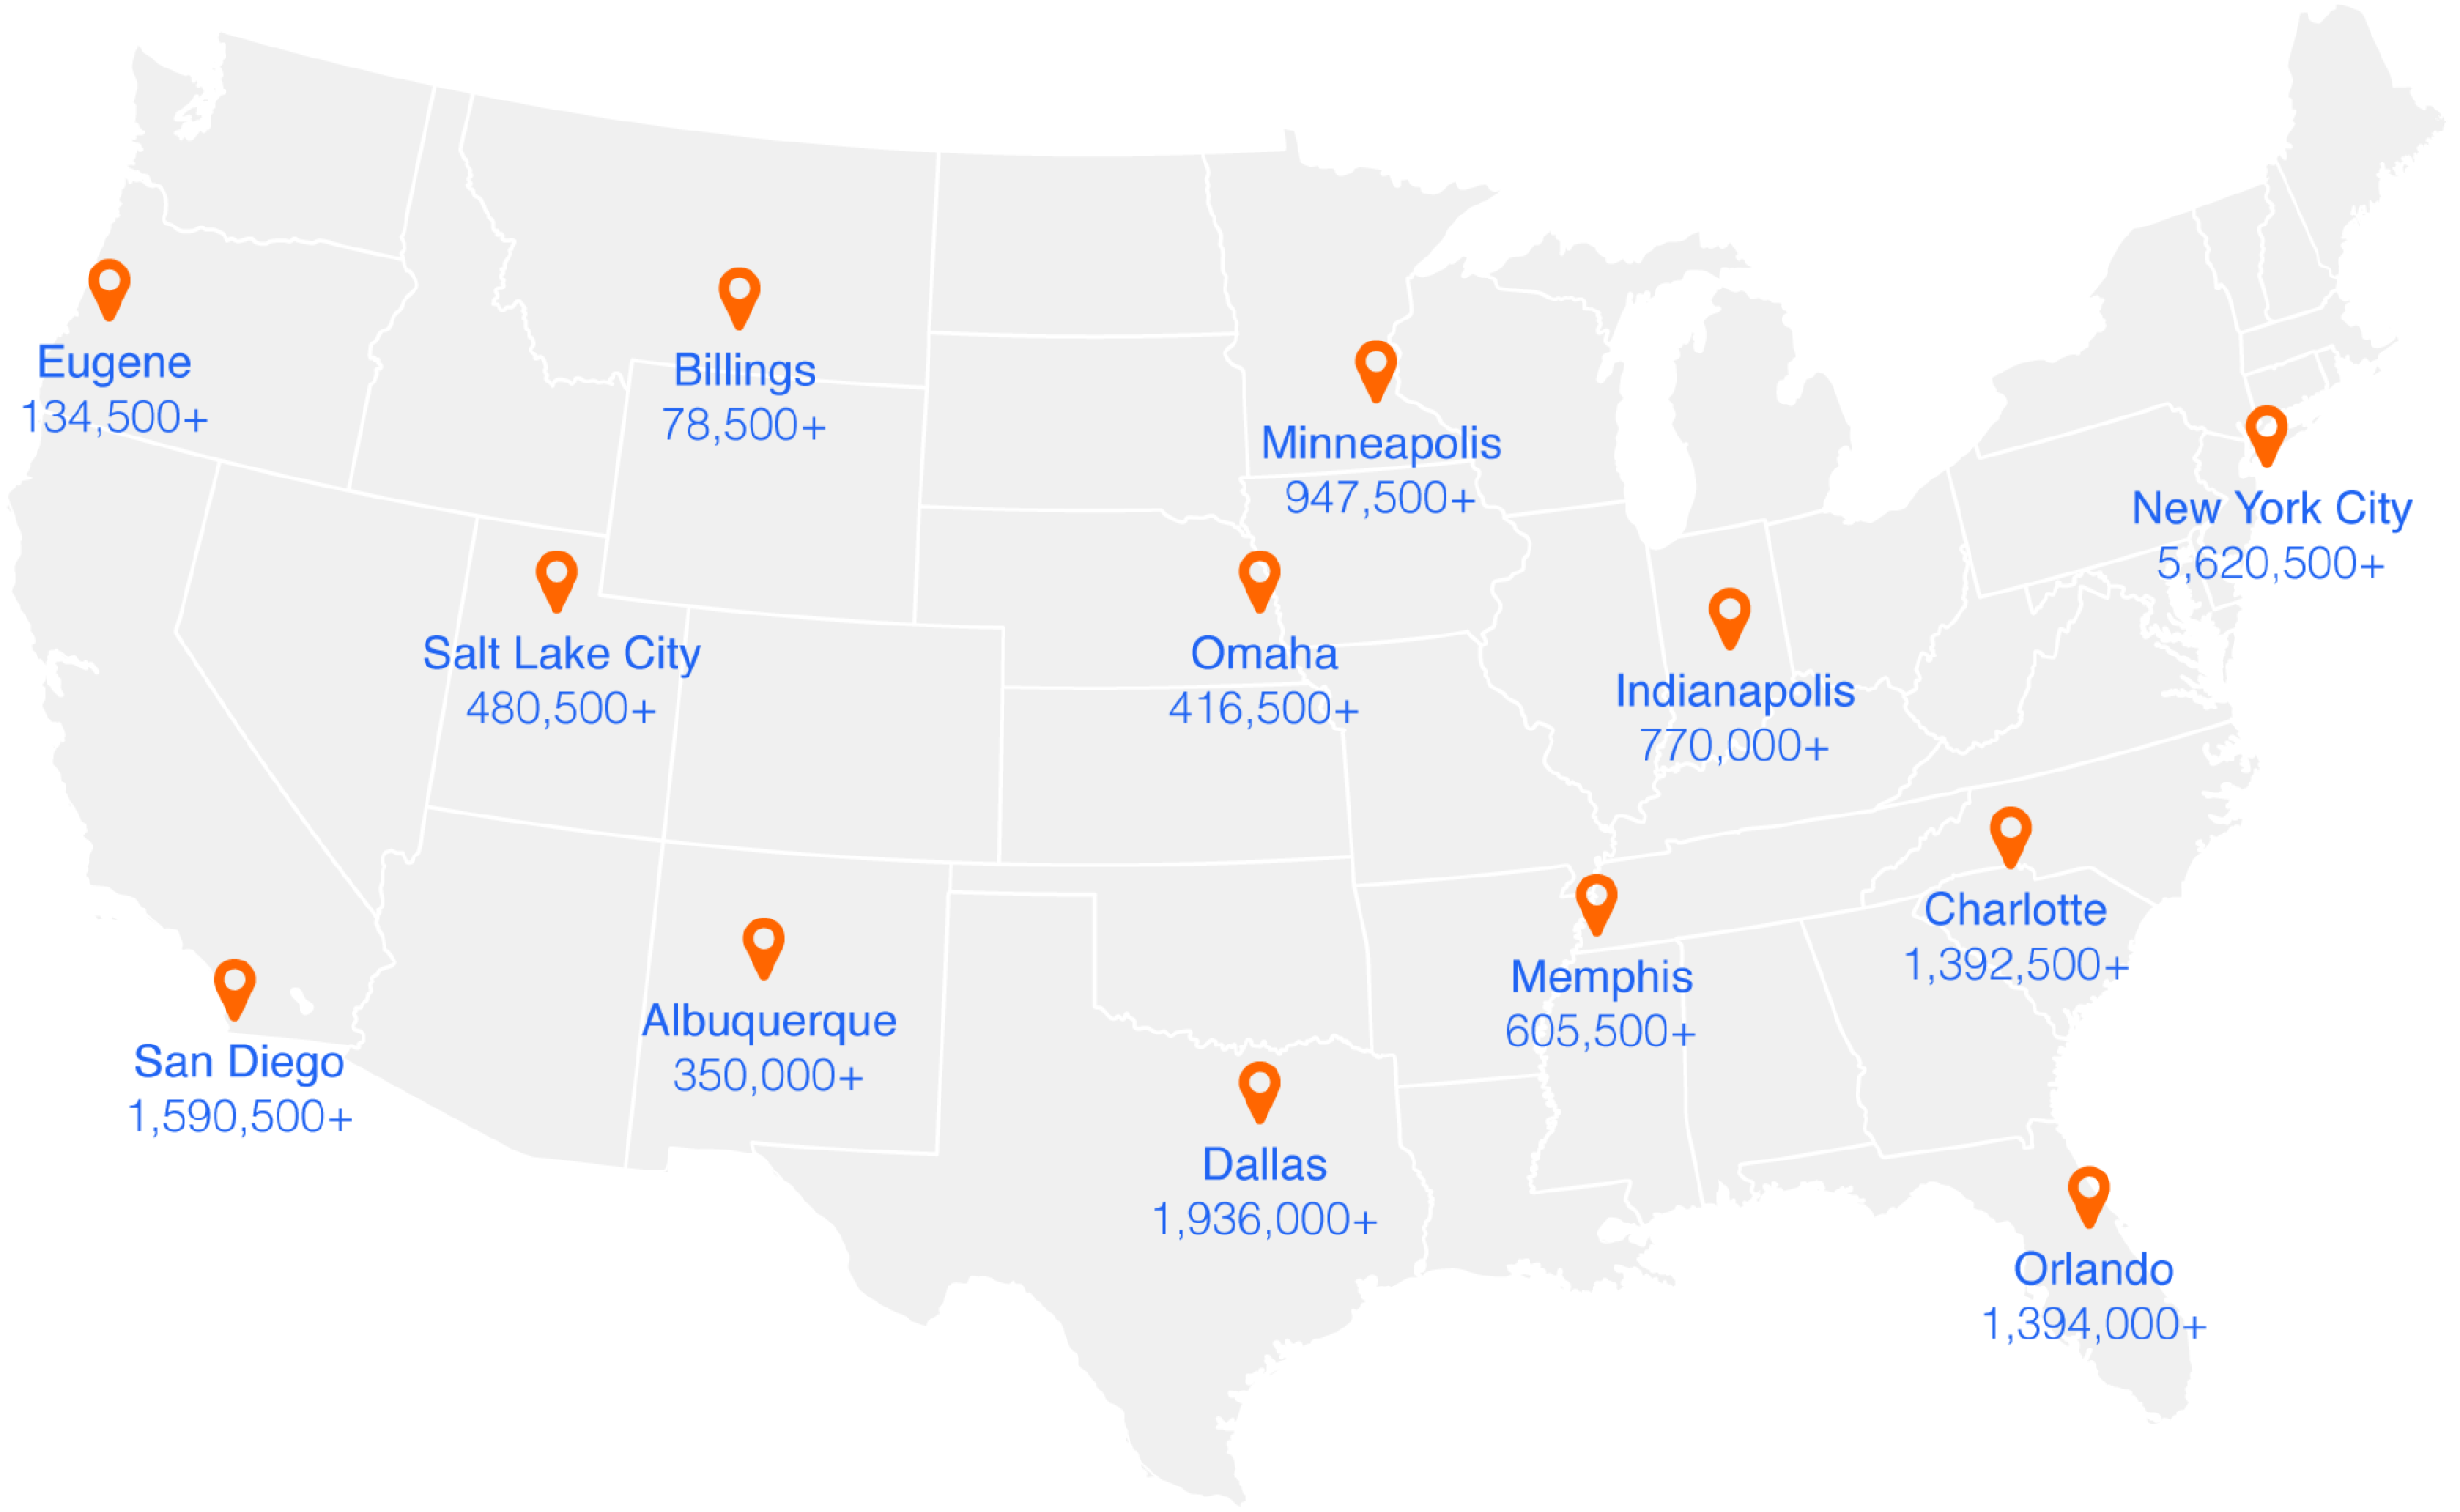 Numbers Shown Are Visitors Who Performed A Job Search On Indeed In The Past Year As Of July 2017